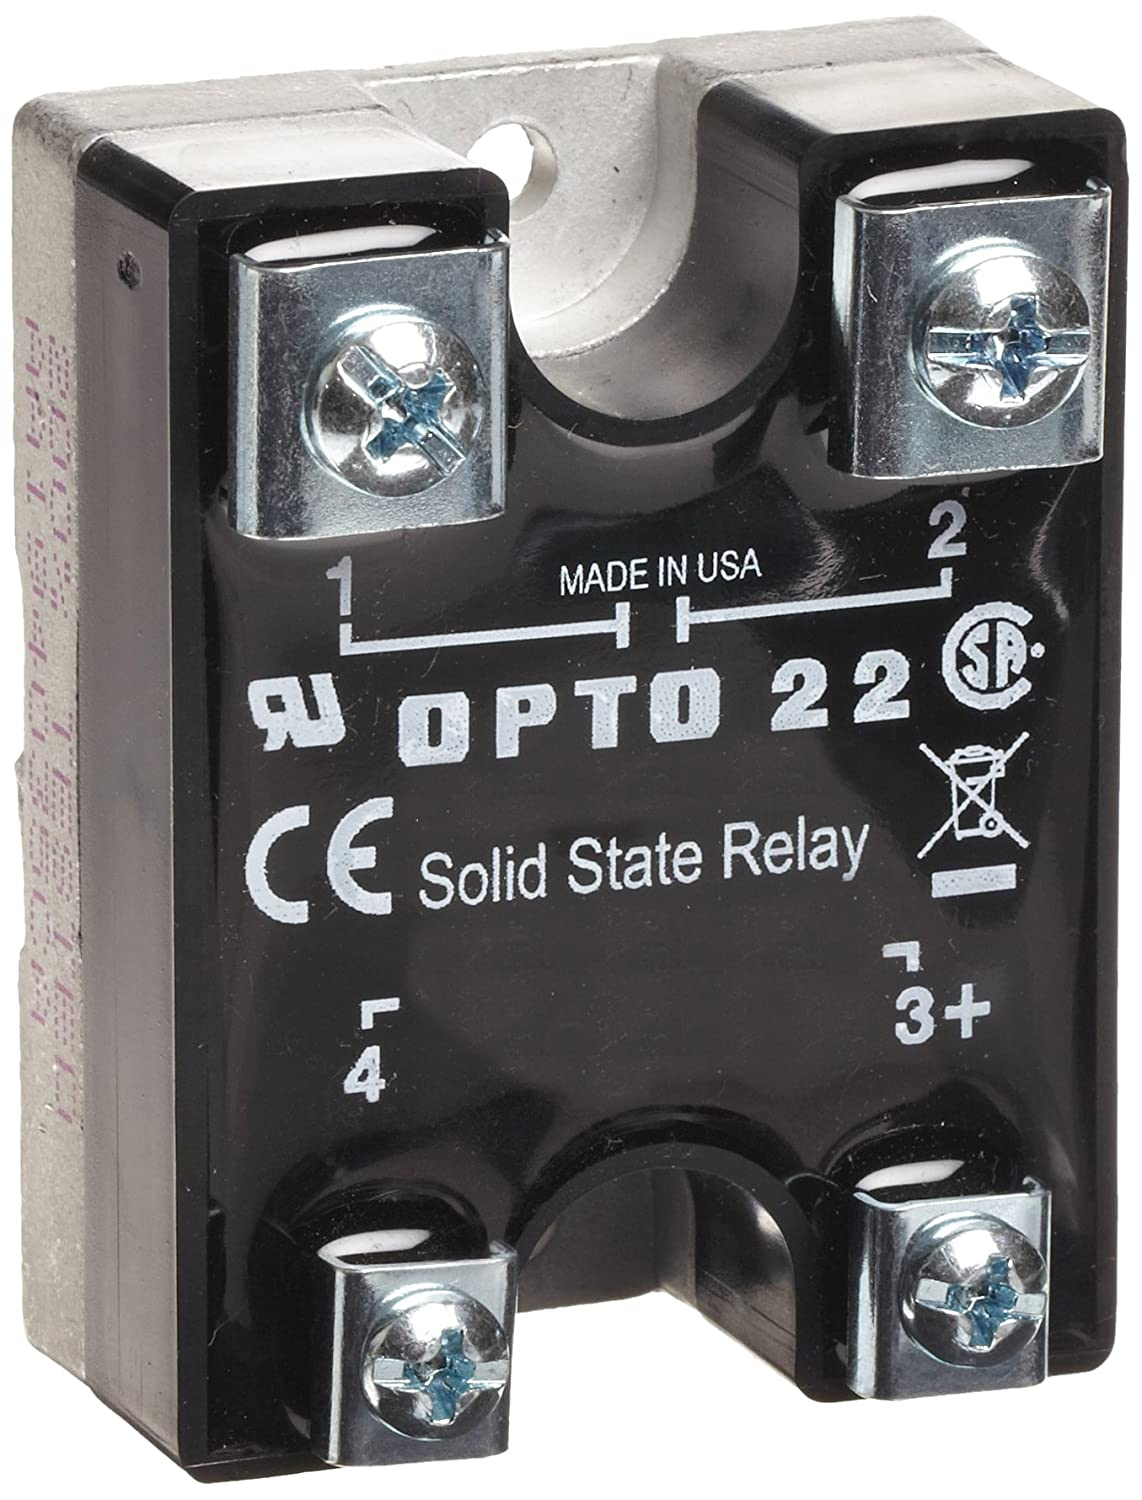 Opto 22 240A25 AC Control Solid State Relay 240 VAC 25 Amp 4000 V